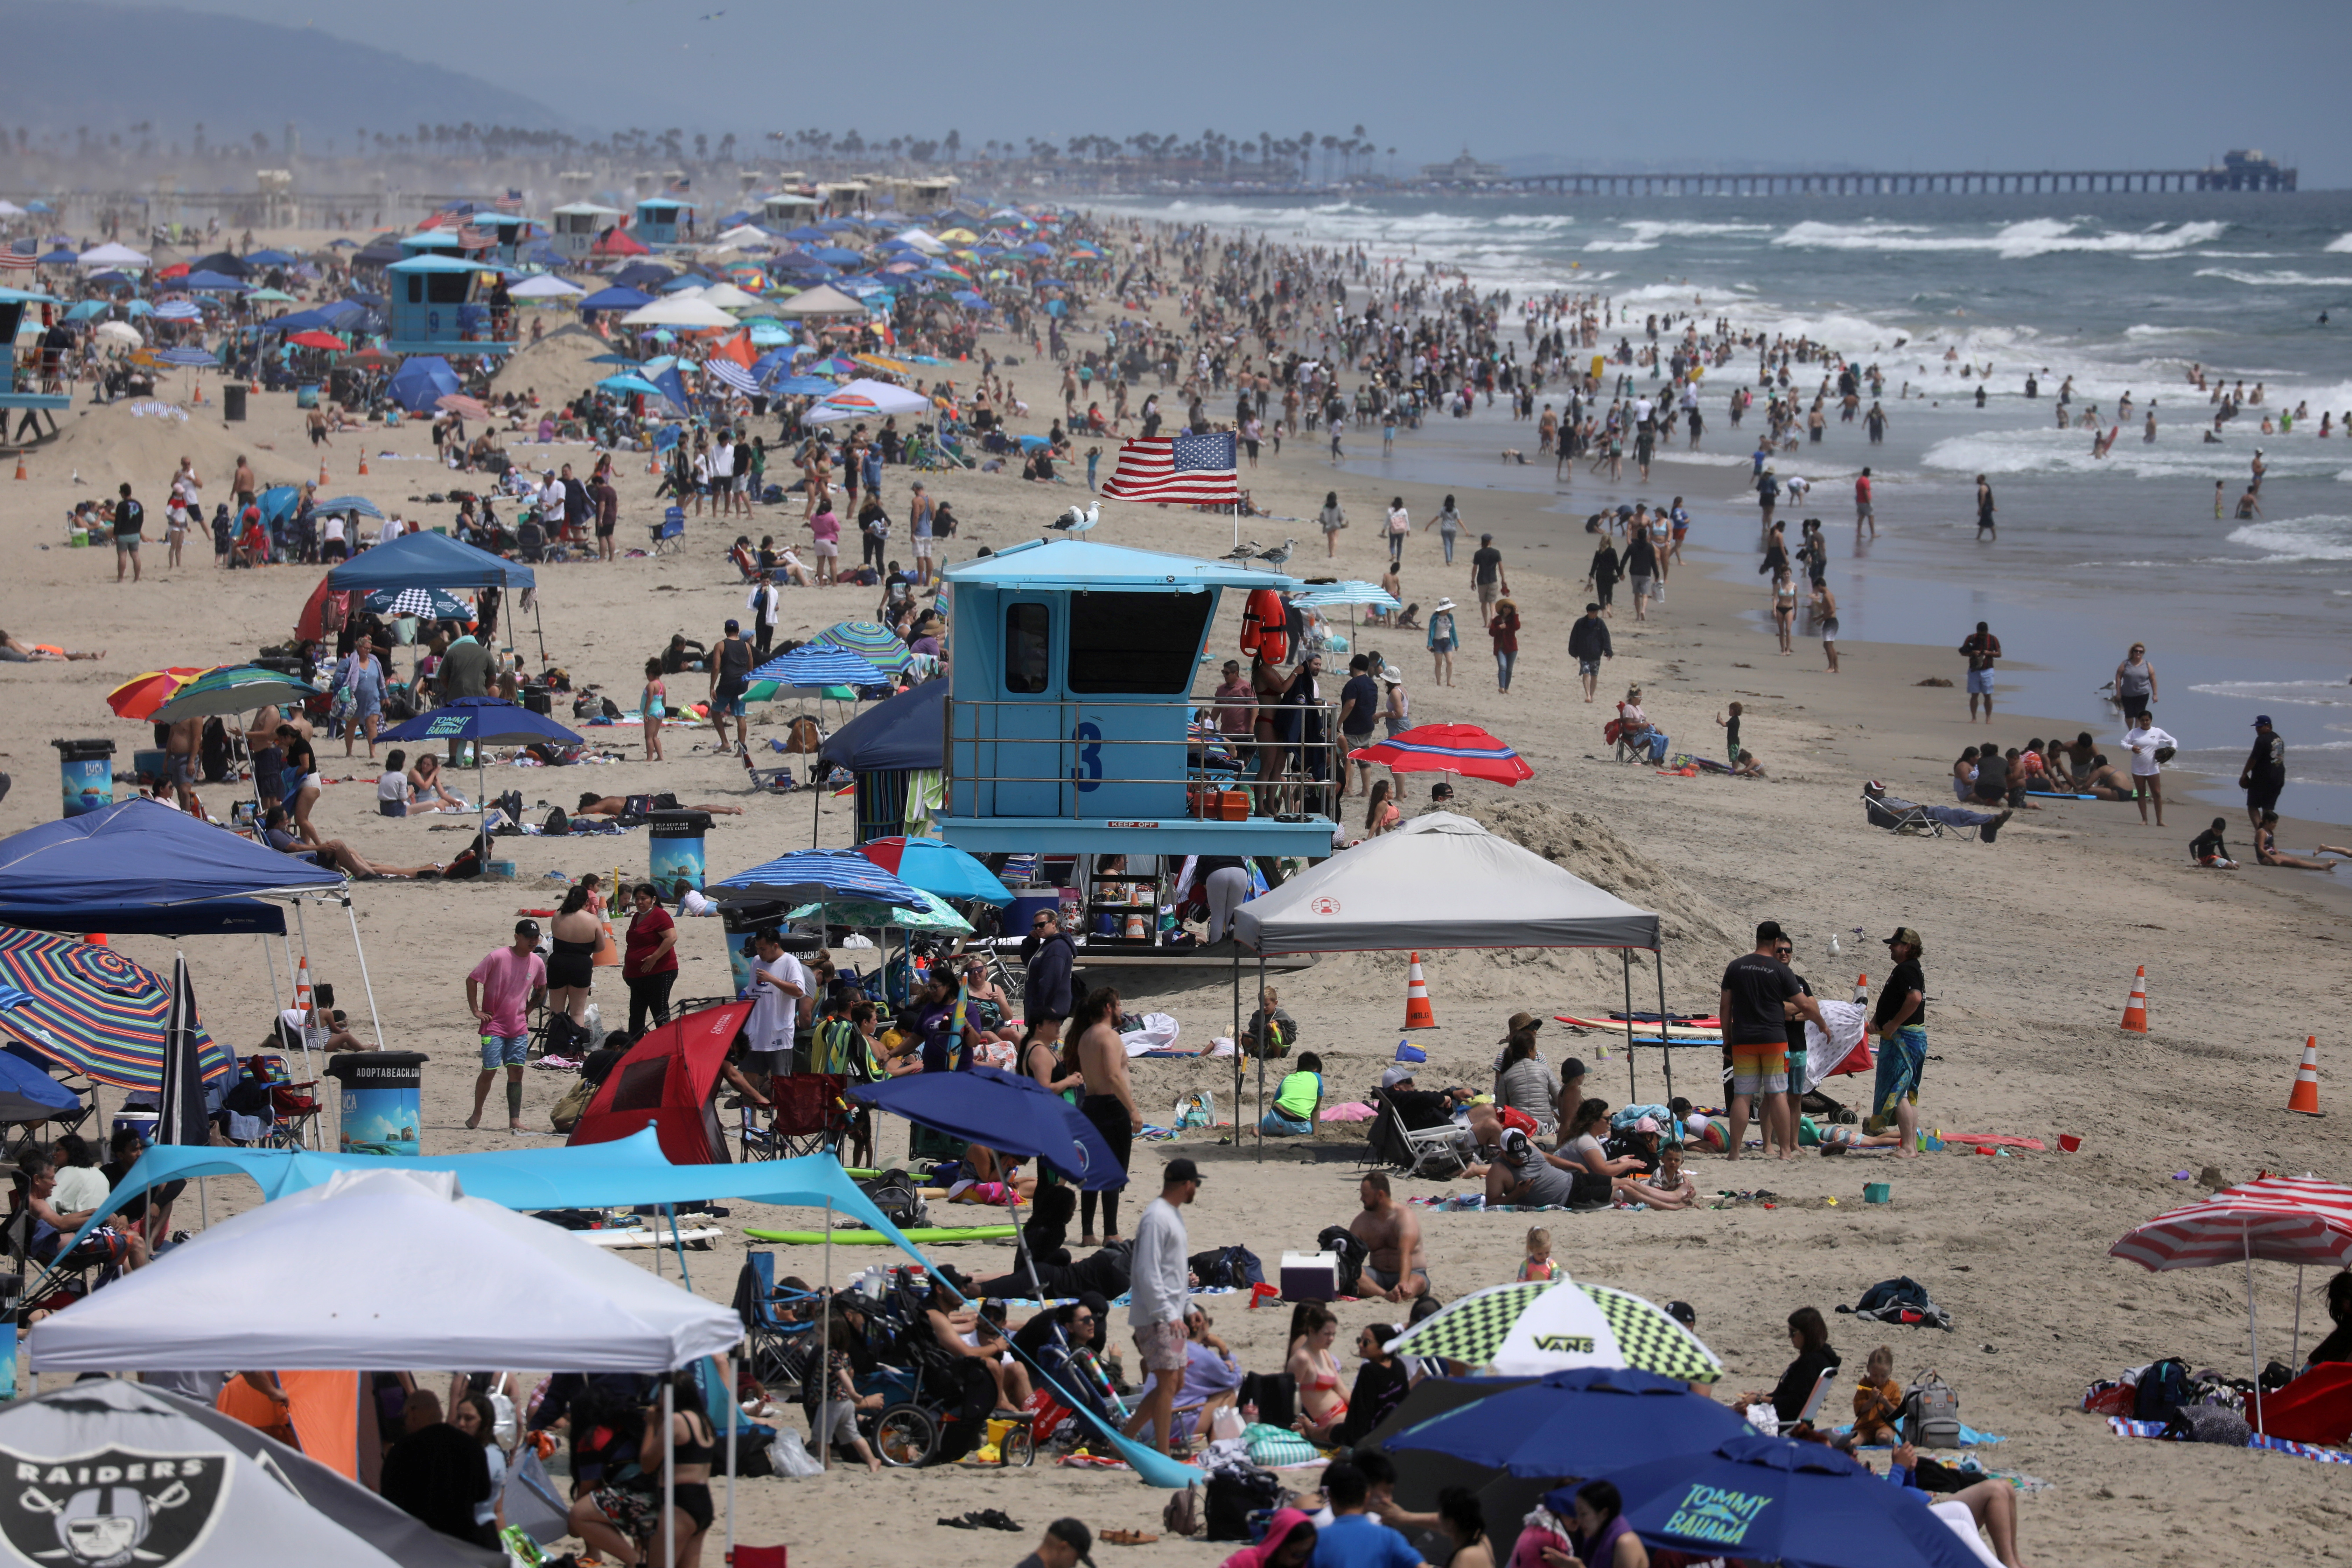 People flock to the beach to enjoy the Memorial Day long weekend, in Santa Monica, California, U.S. May 30, 2021. REUTERS/David Swanson